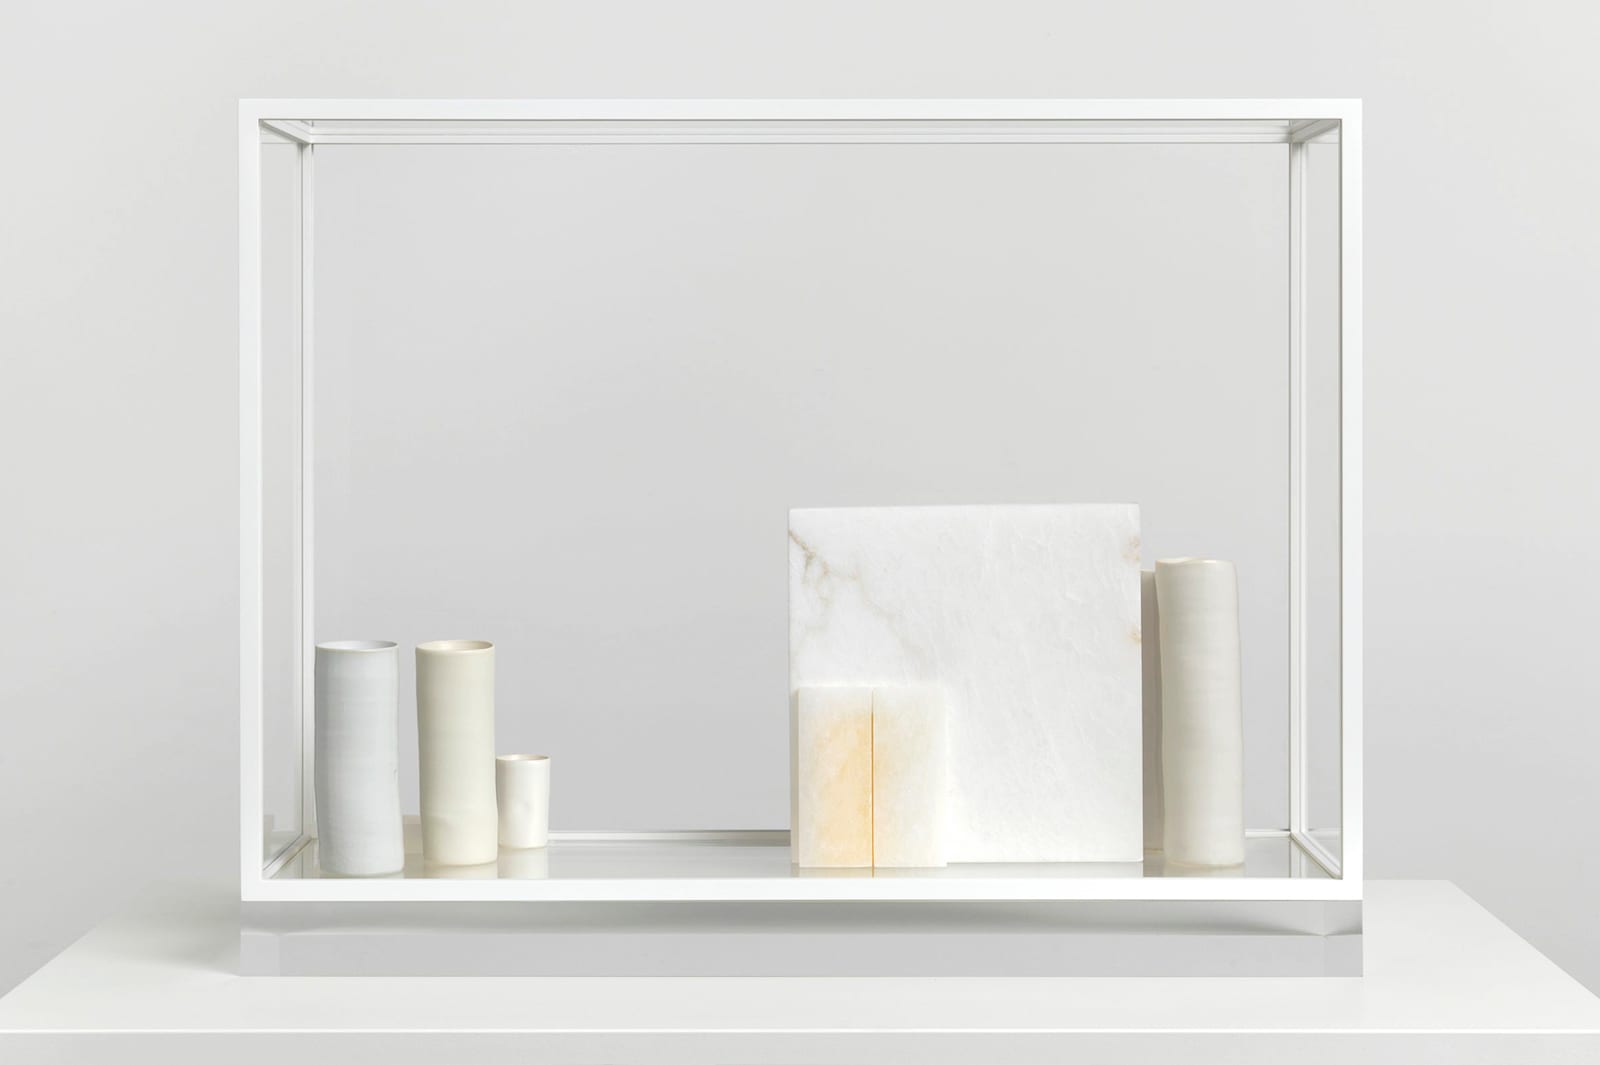 Edmund de Waal, the white road